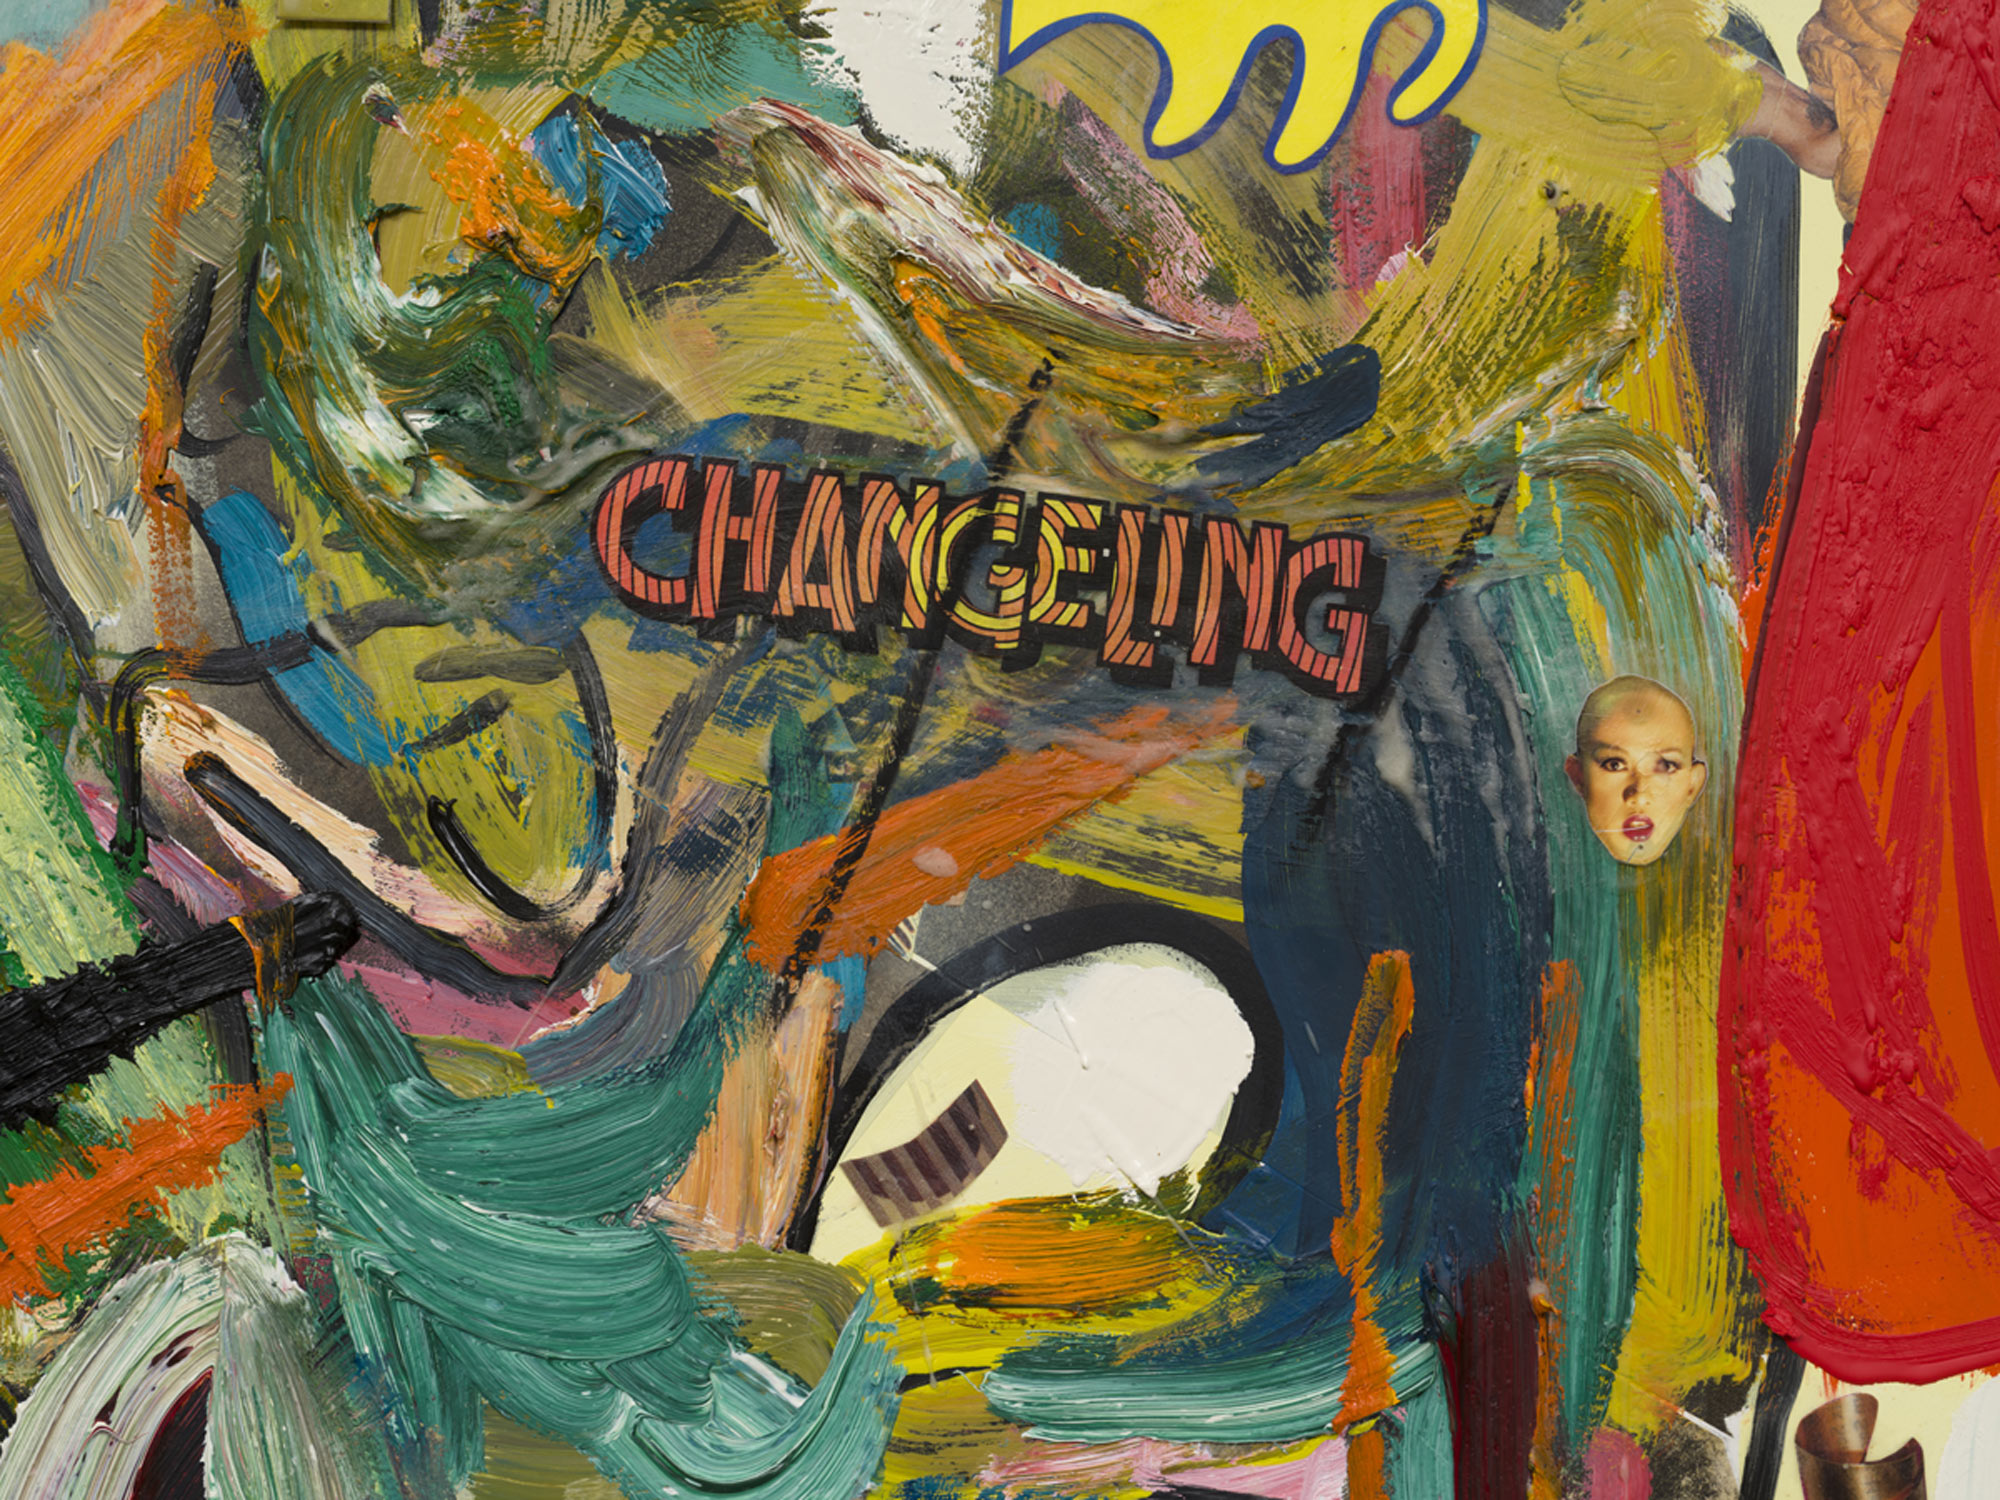 Elliott Hundley<br> Changeling, 2020<br> oil, encaustic, photographs and collage on linen<br> 80 x 96 x 2 1/4 in. (203.2 x 243.8 x 5.7 cm)<br> $125,000.00